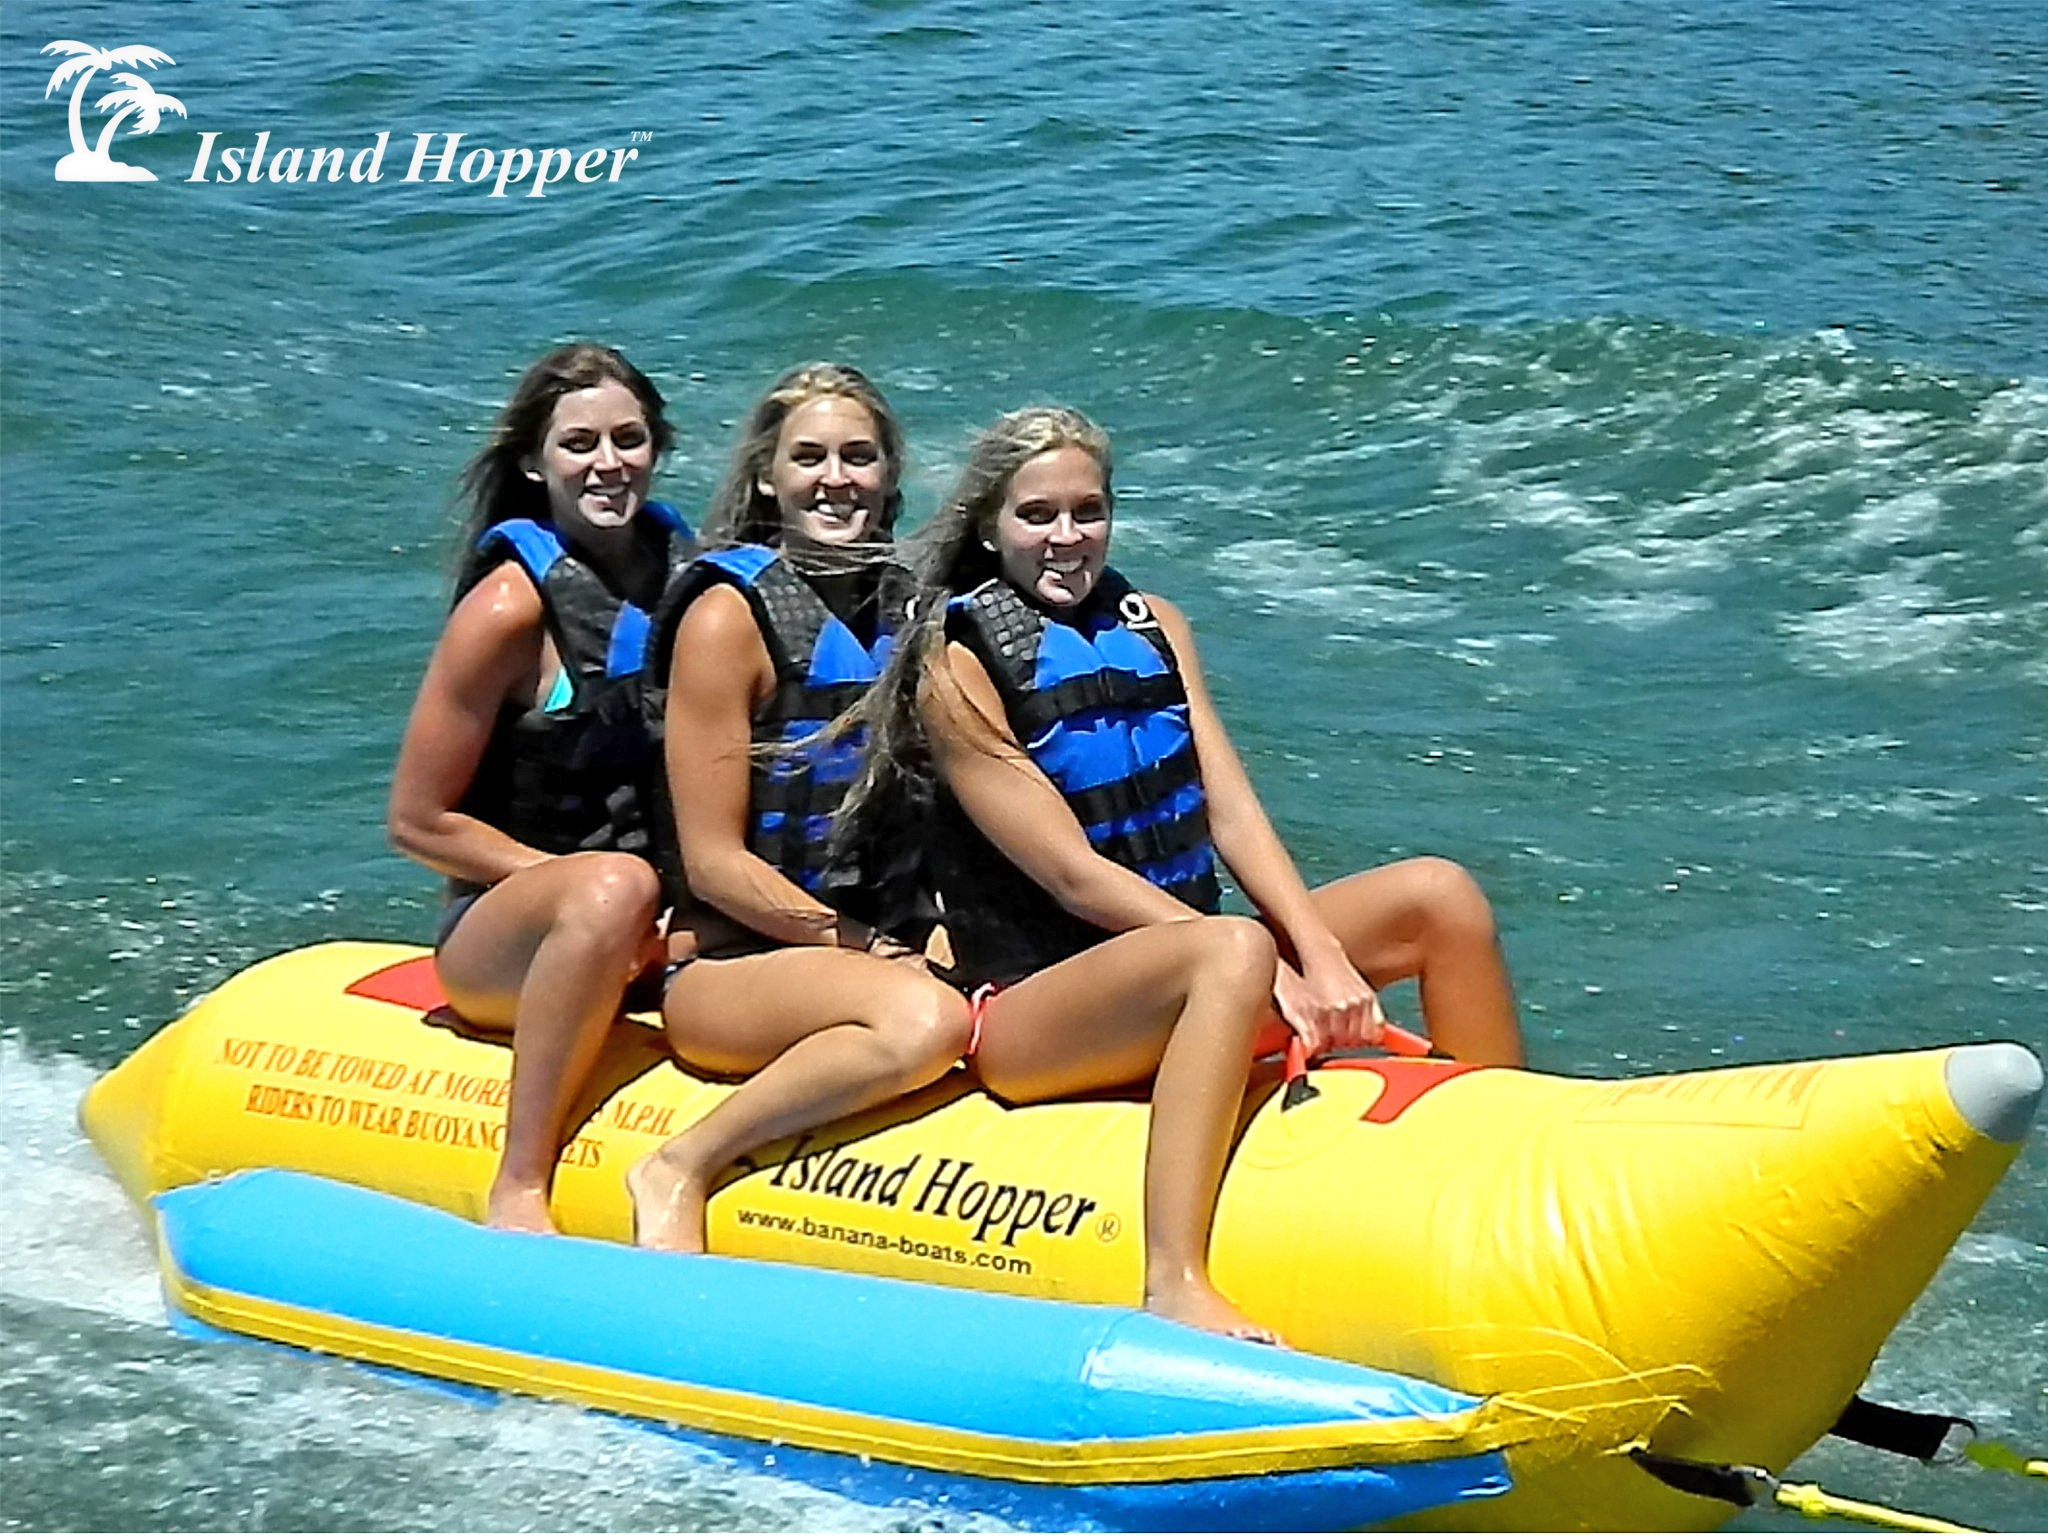 Aqua Sports 420-3 3 Passenger 13 feet in-line Seats Island Hopper Recreational Banana Water Sled